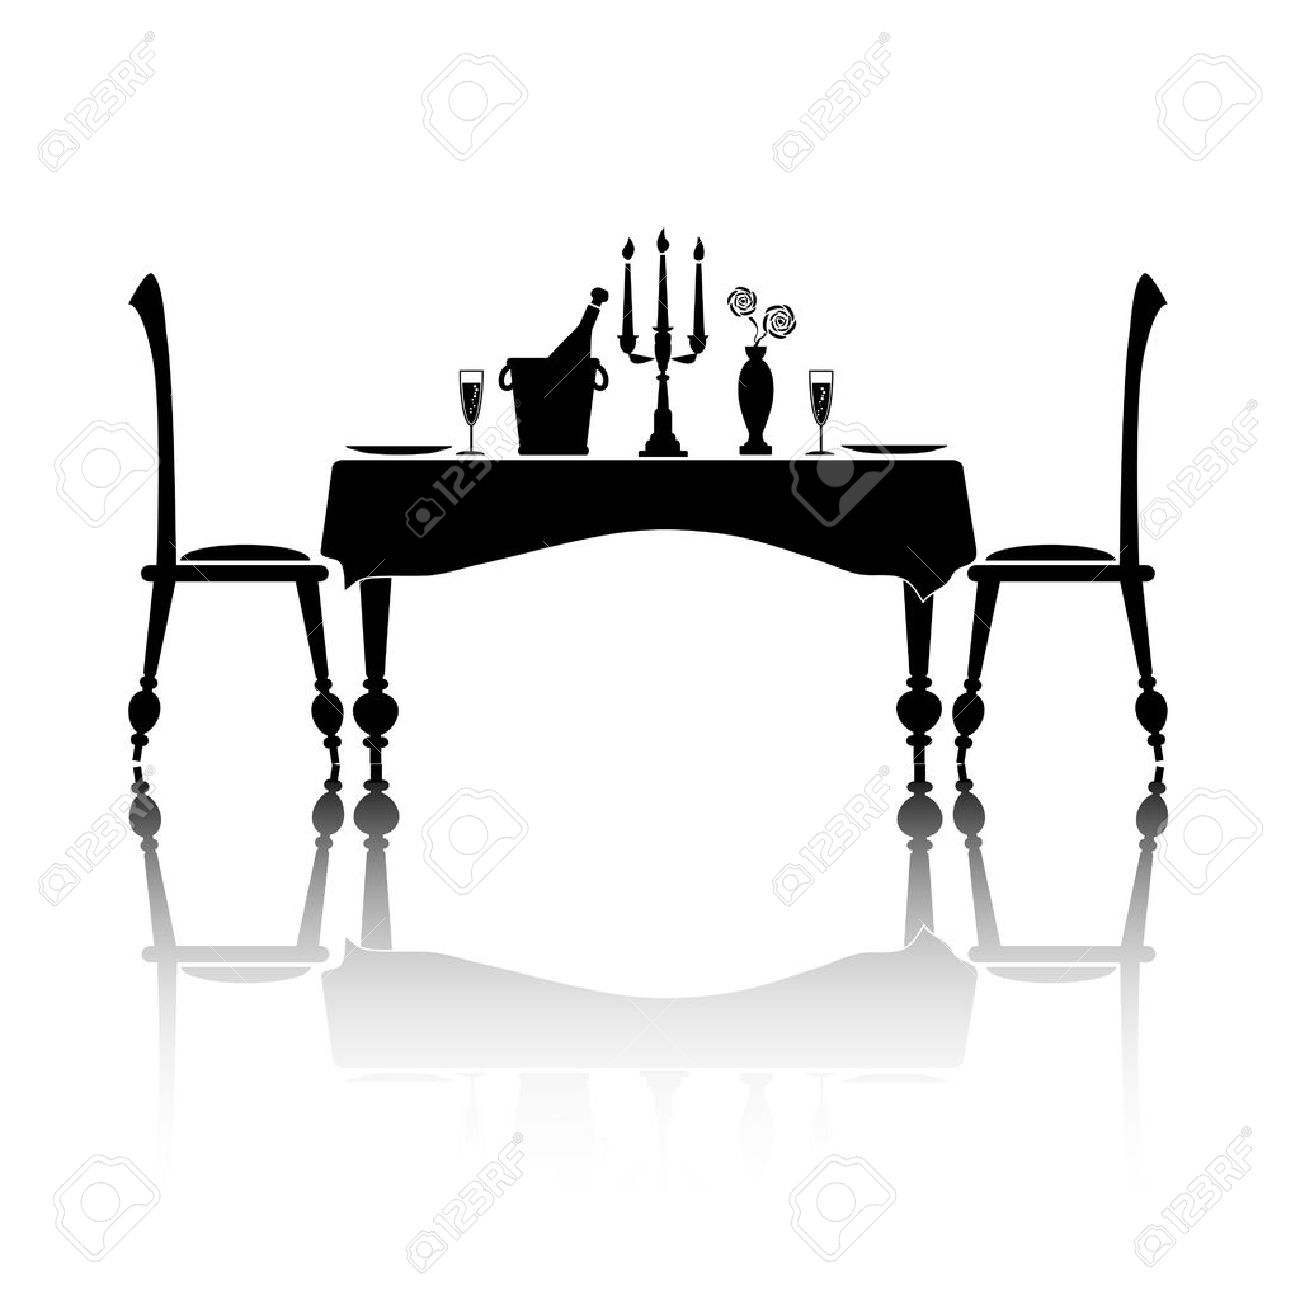 Dining Table Silhouette Of A Romantic Setting For Two Black And White With